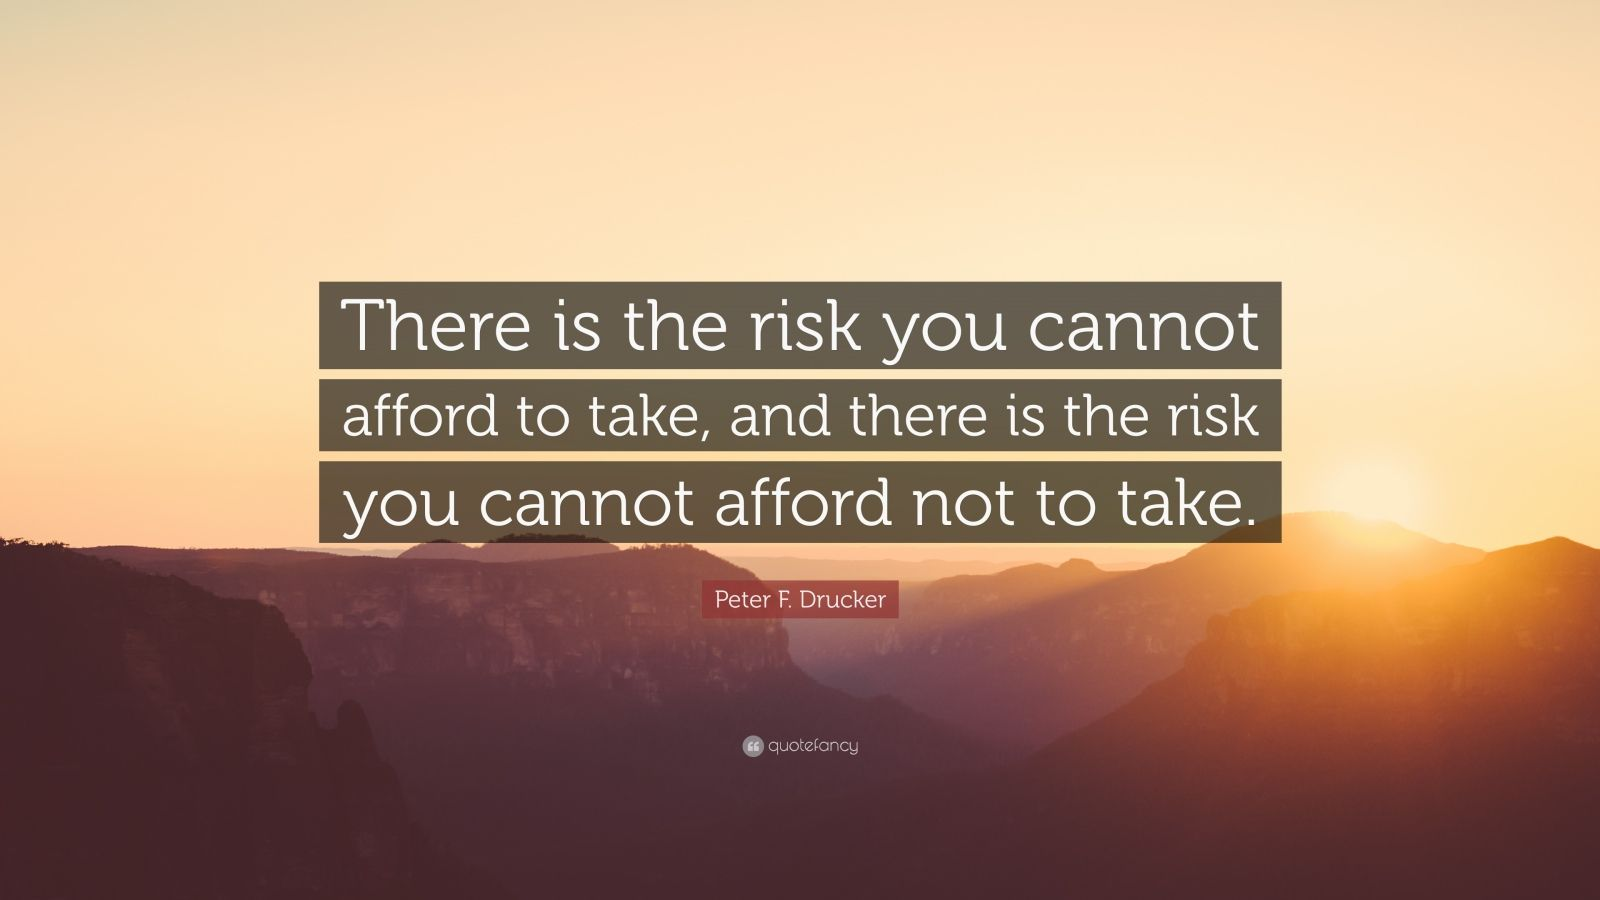 """Peter F. Drucker Quote: """"There is the risk you cannot afford to take, and there is the risk you cannot afford not to take."""""""